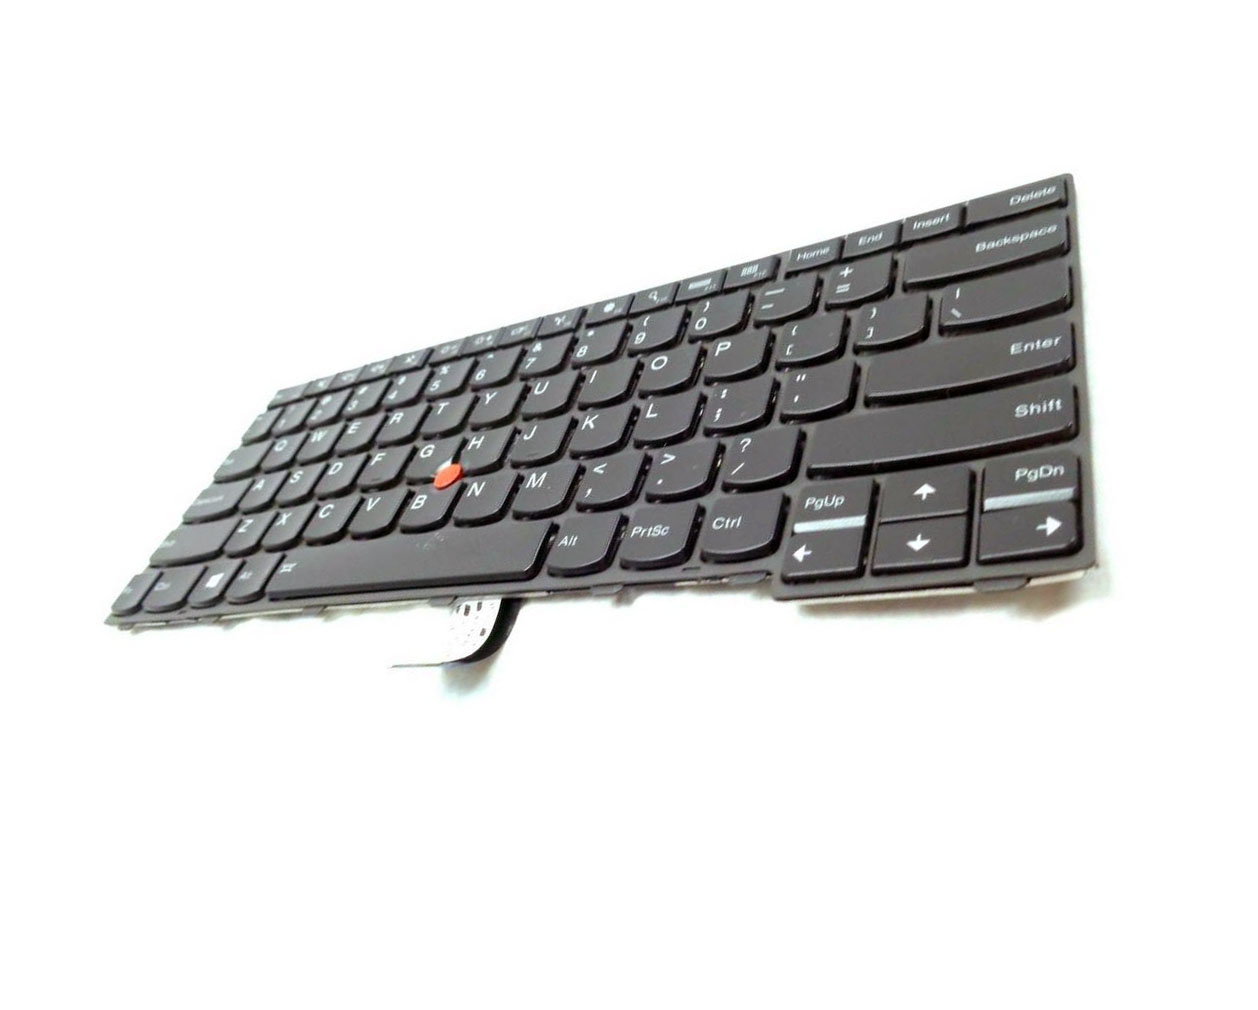 LENOVO 04X0113 KEYBOARD NOTEBOOK SPARE PART